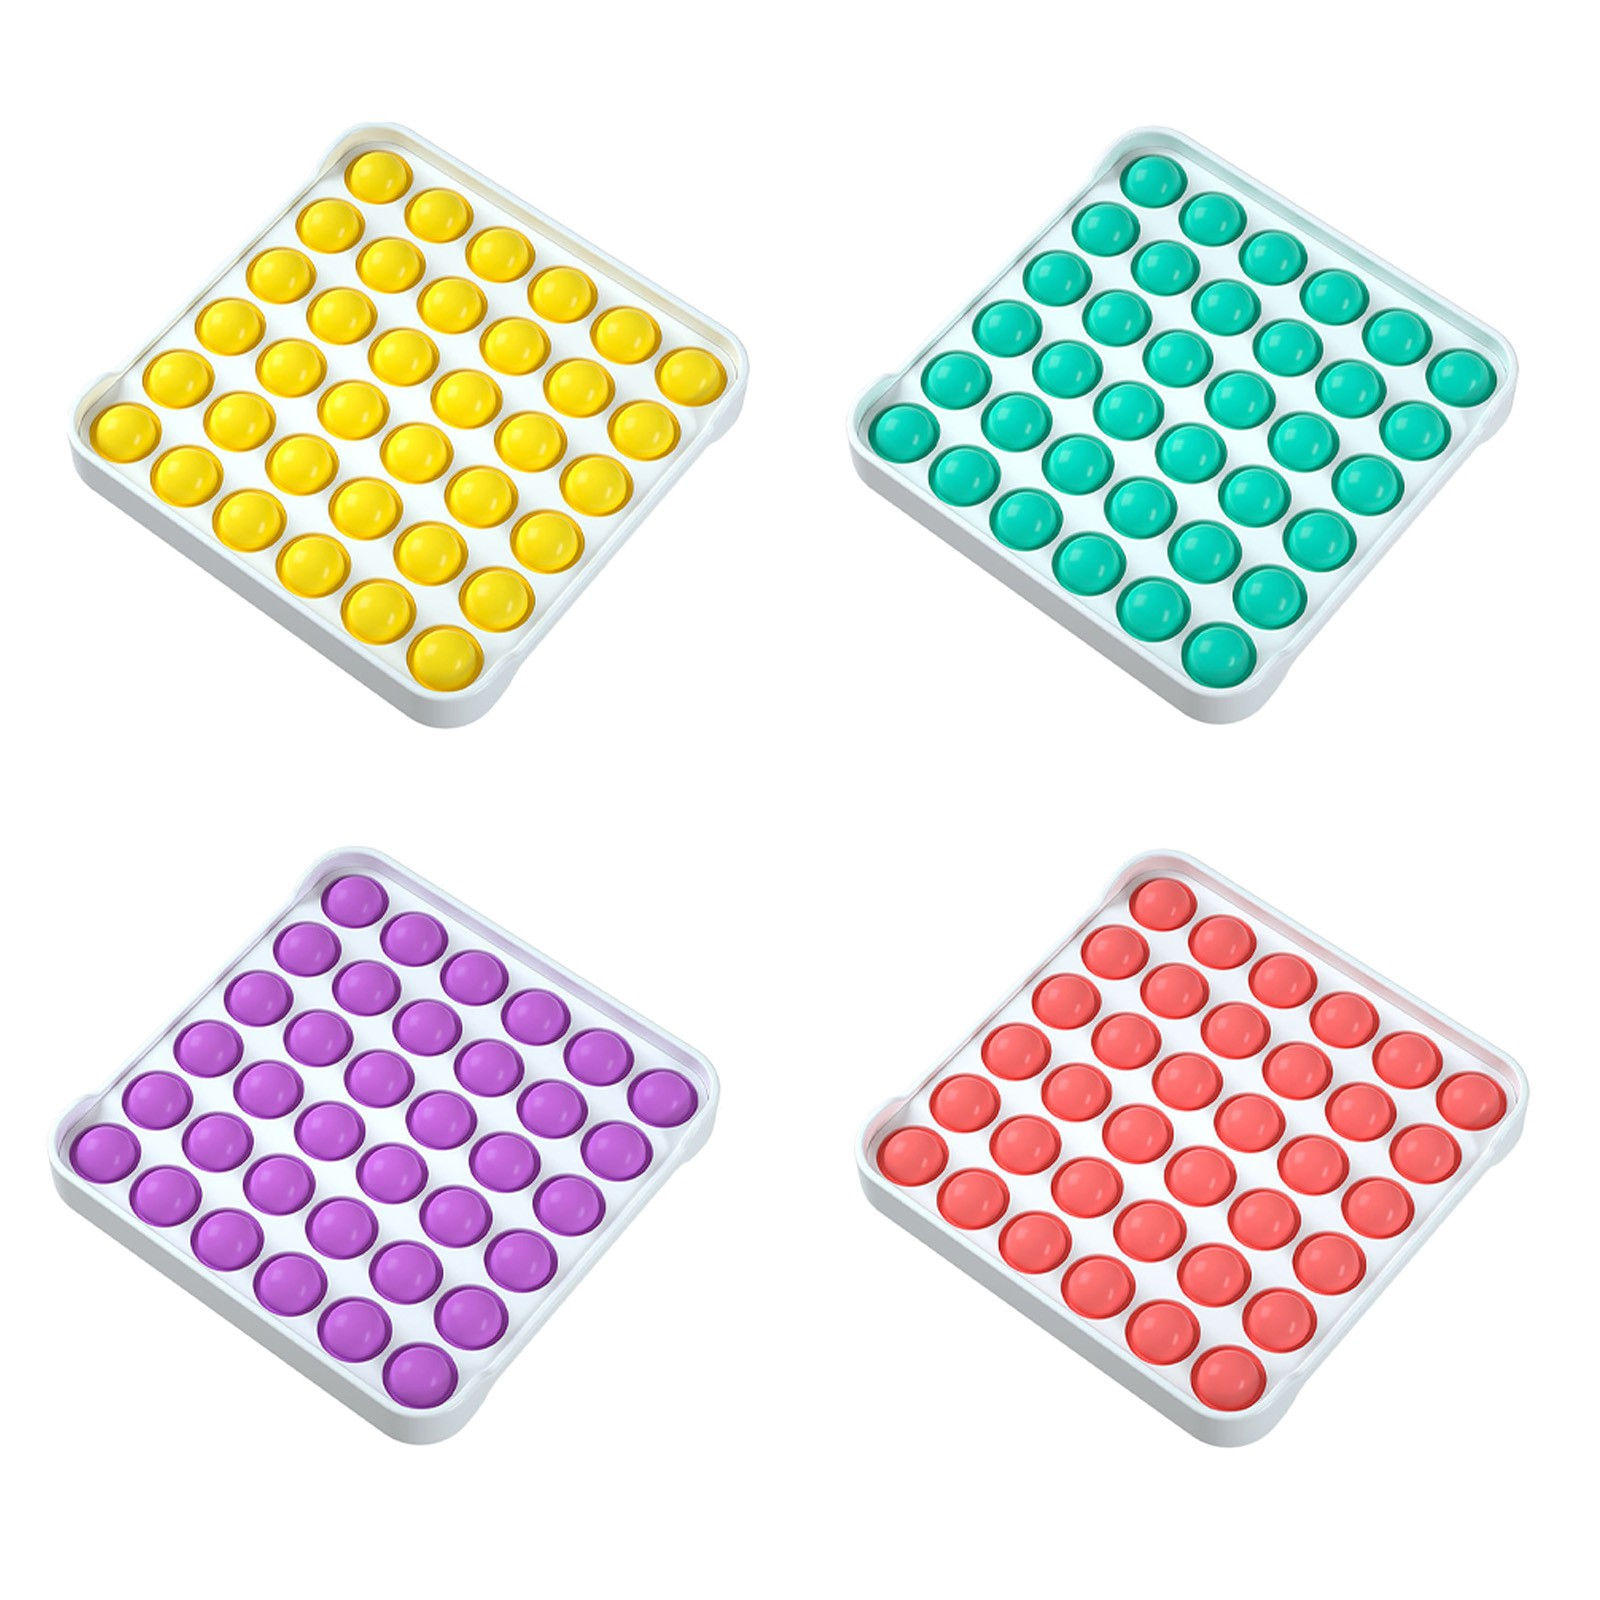 New Fidget Toys Soft-Squeeze-Toy Needs-Stress Pop-It-Autism Push-Bubble Reliever Special img4